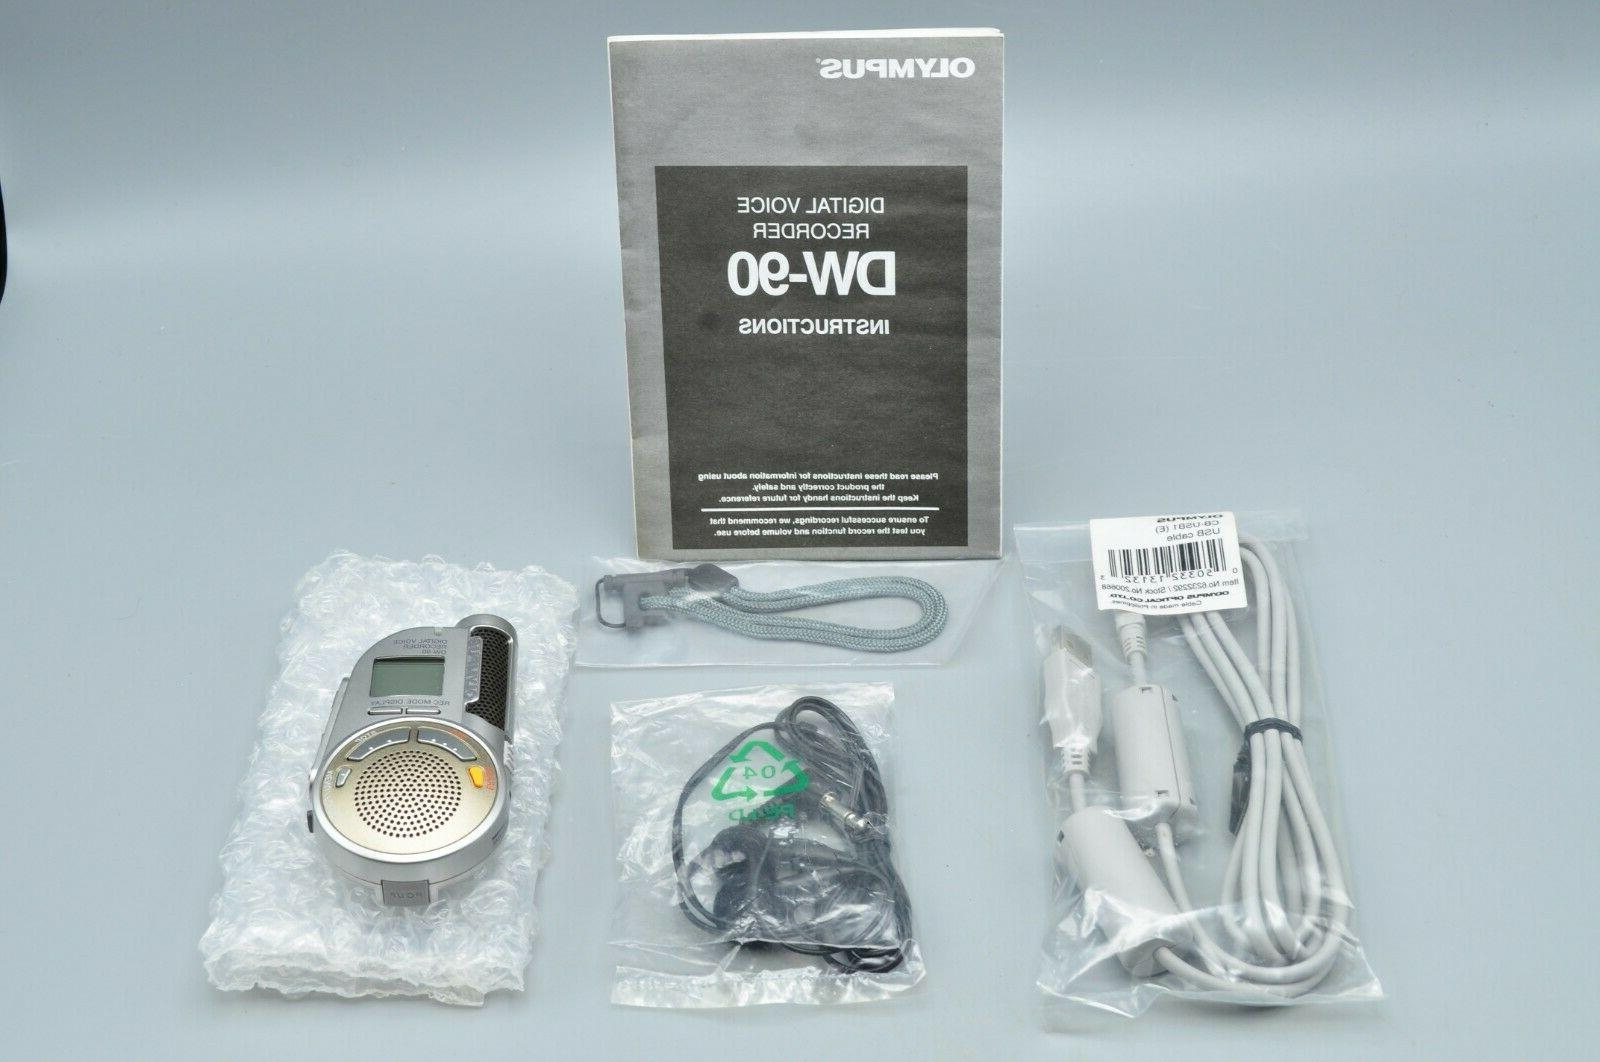 dw 90 digital voice recorder new free